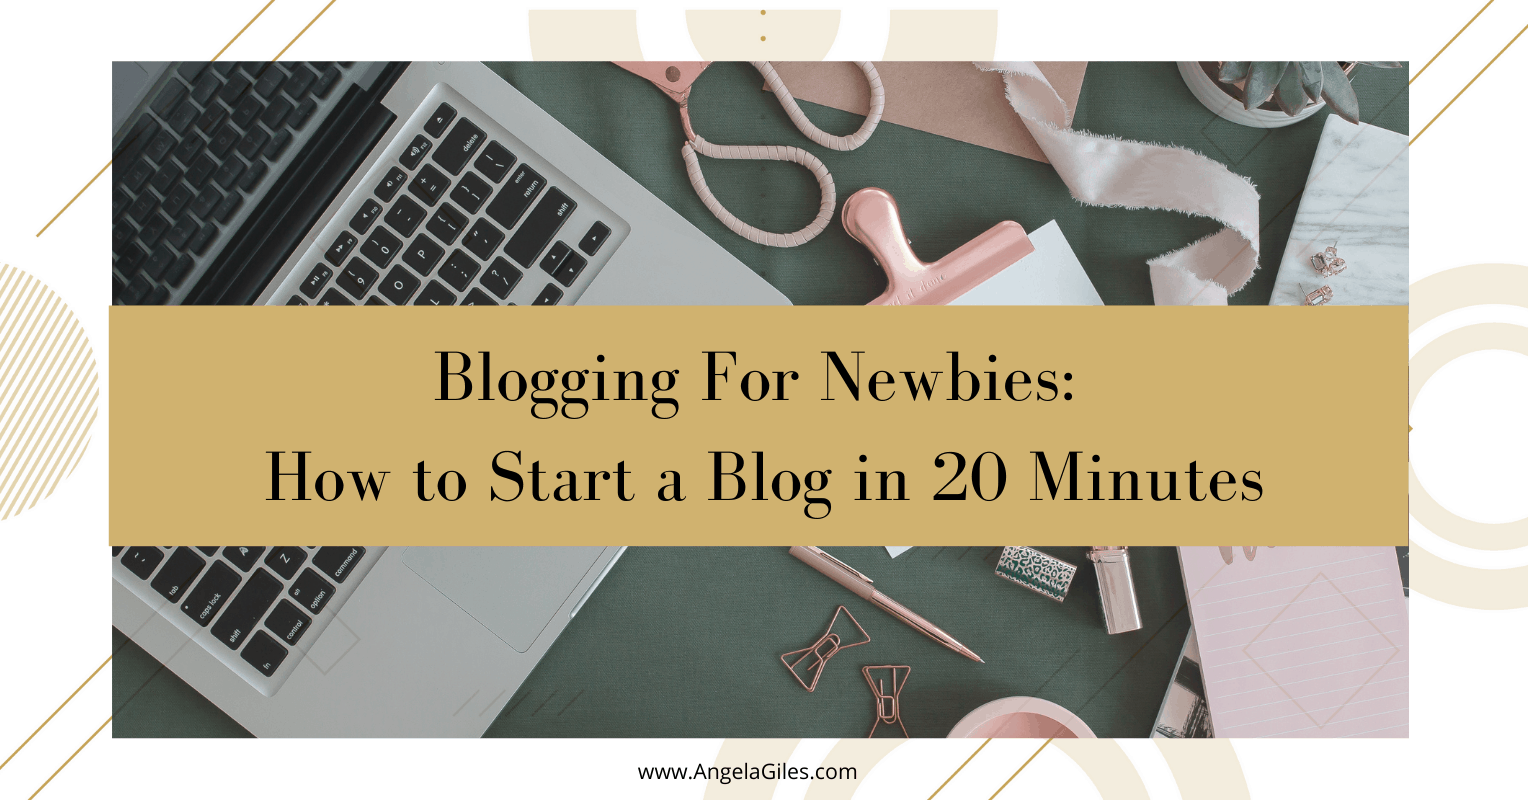 Blogging For Newbies: How to Start a Blog in 20 Minutes